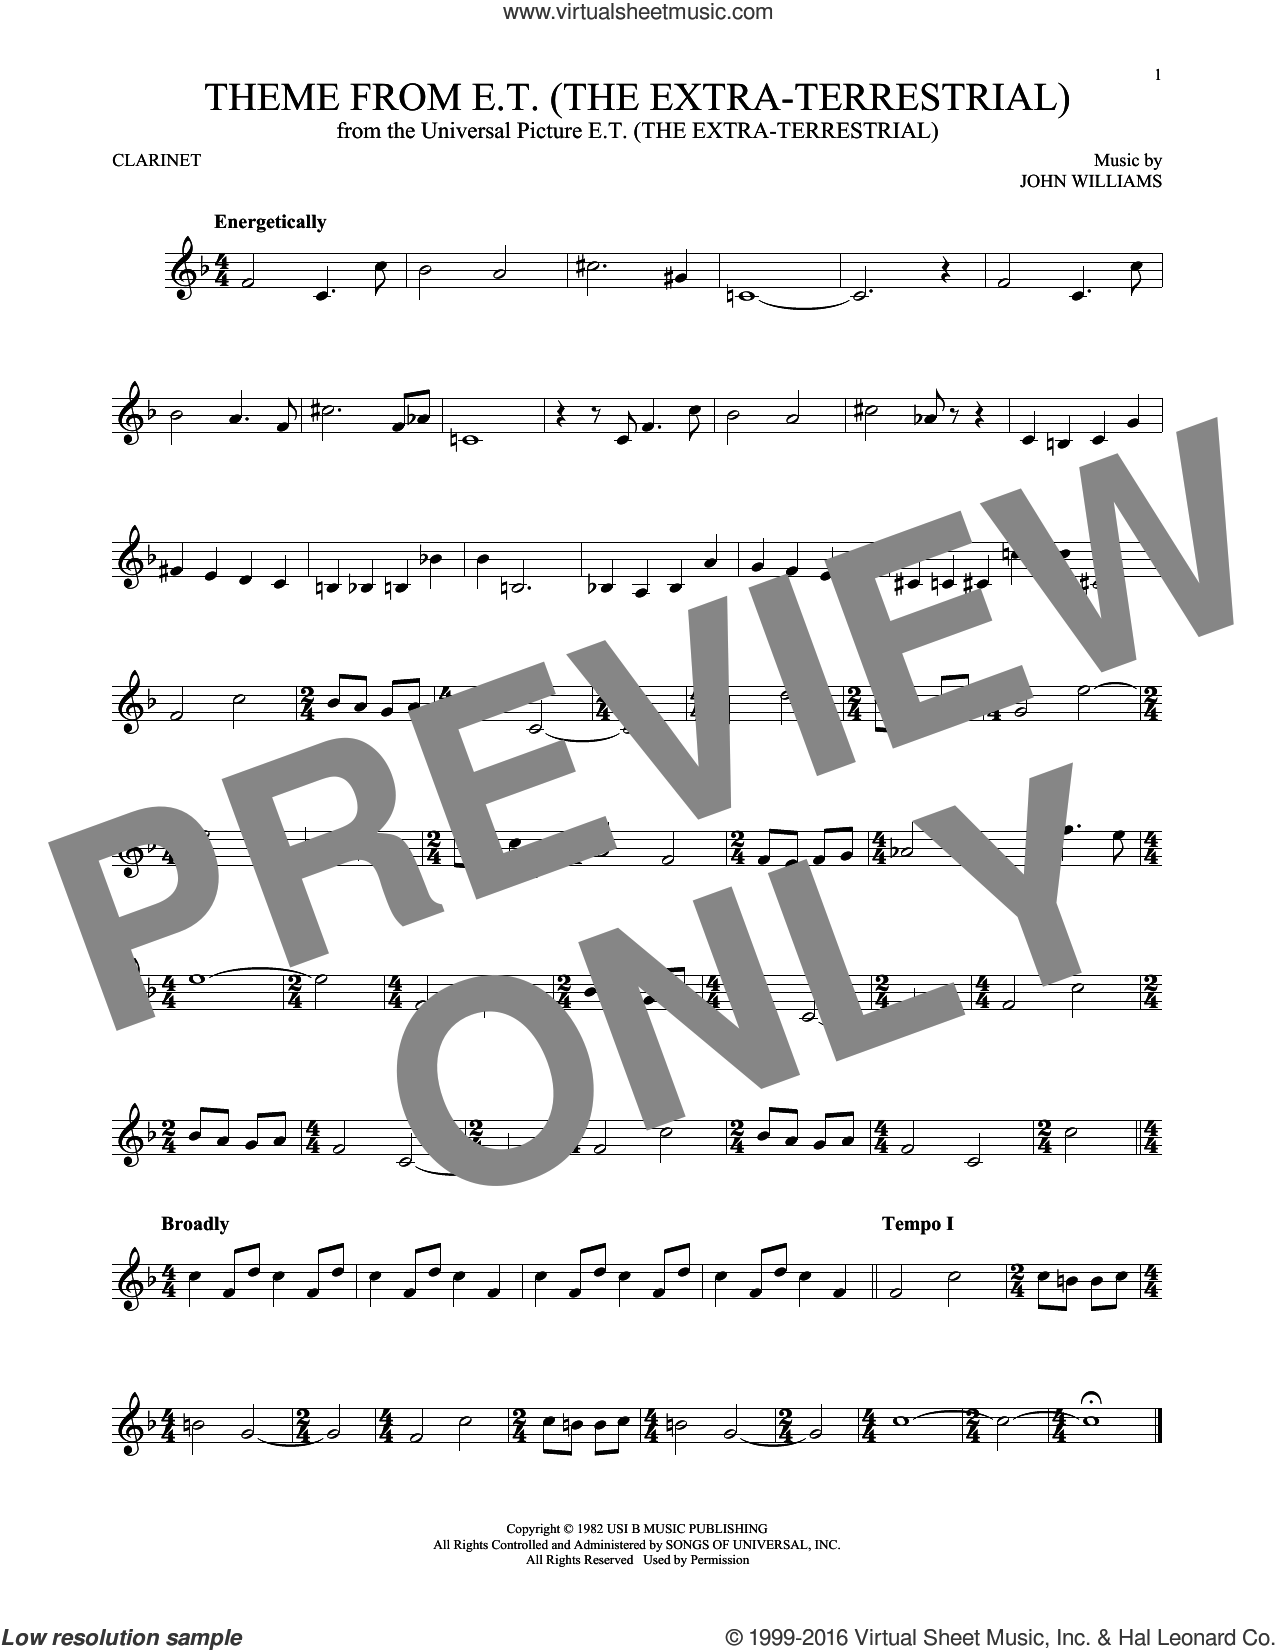 Theme From E.T. (The Extra-Terrestrial) sheet music for clarinet solo by John Williams. Score Image Preview.